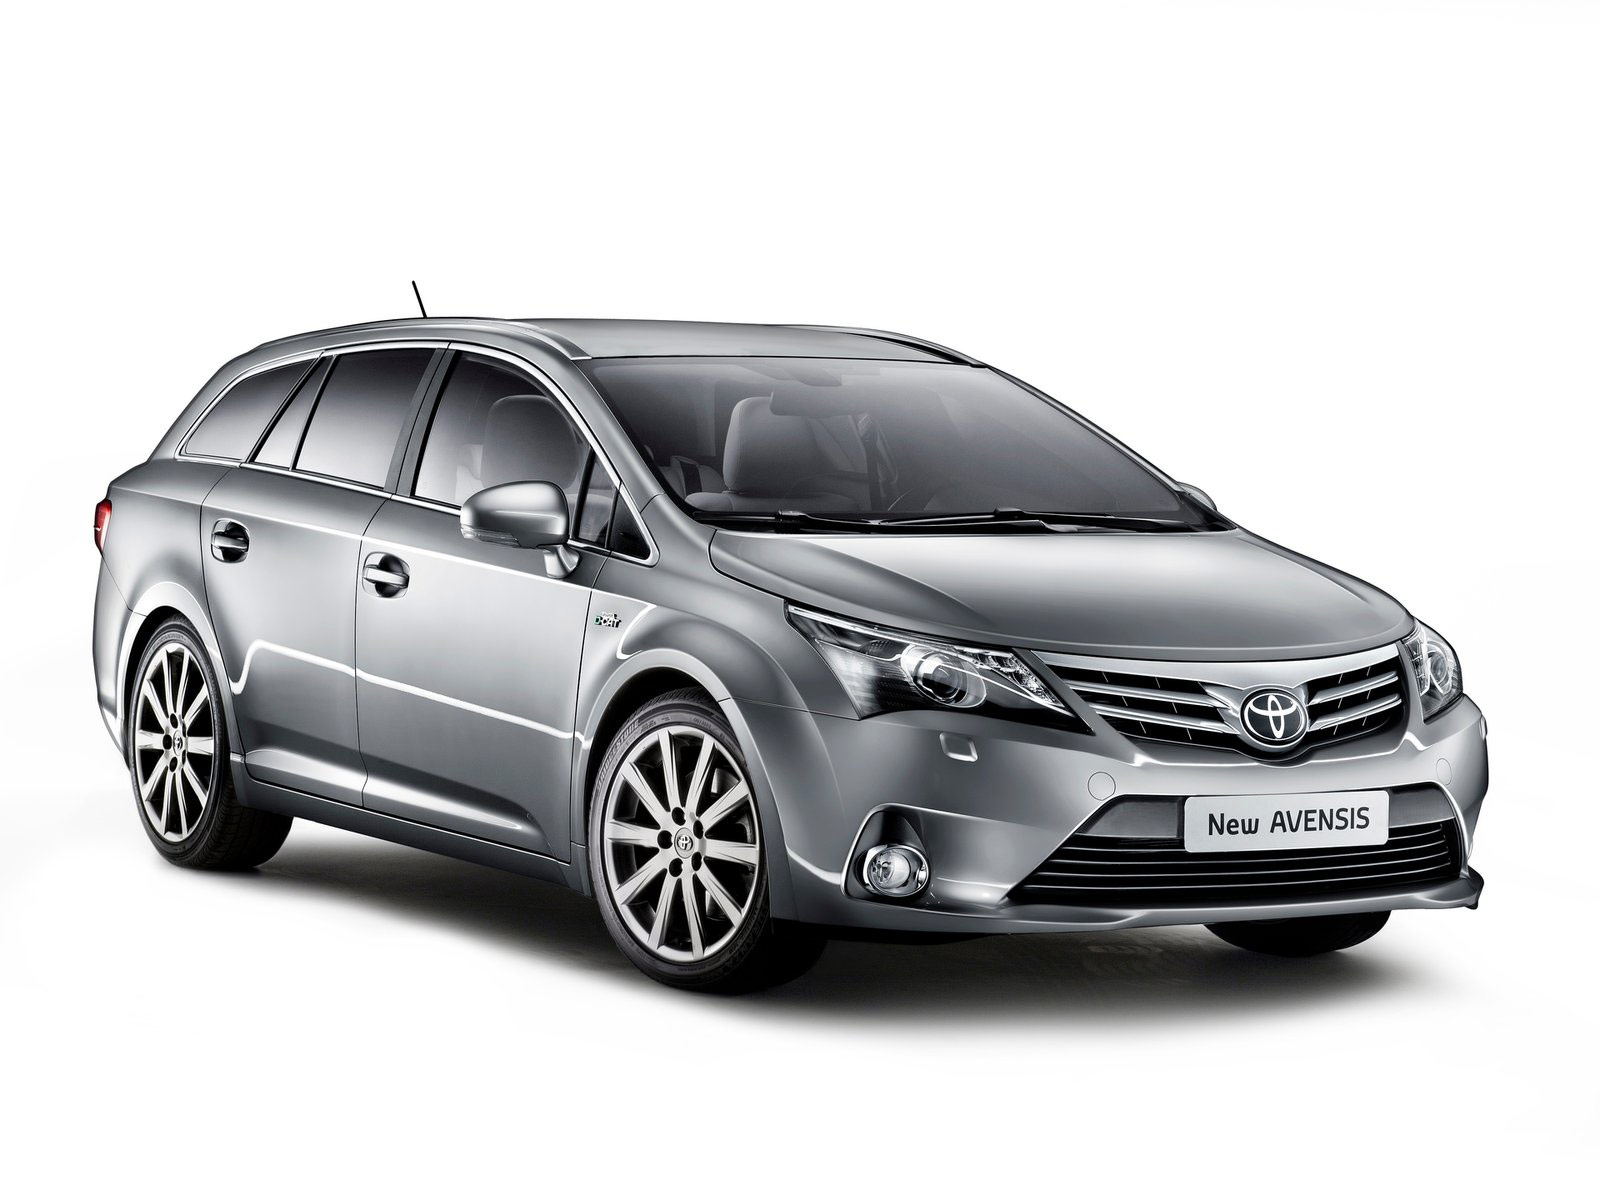 2012 TOYOTA Avensis car pictures, car review